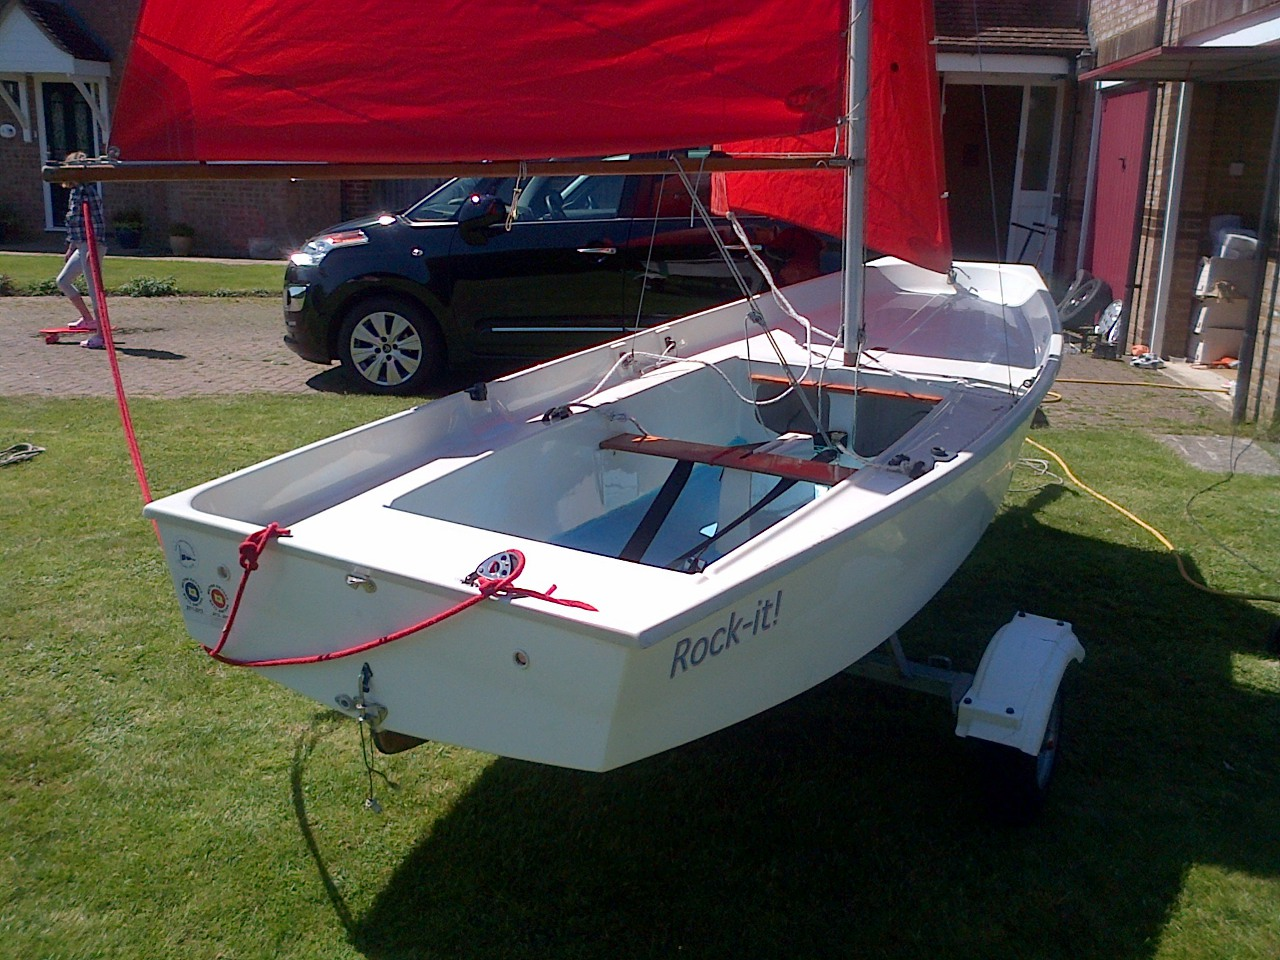 What is thought to be a Holt GRP Mirror dinghy rigged up on a lawn